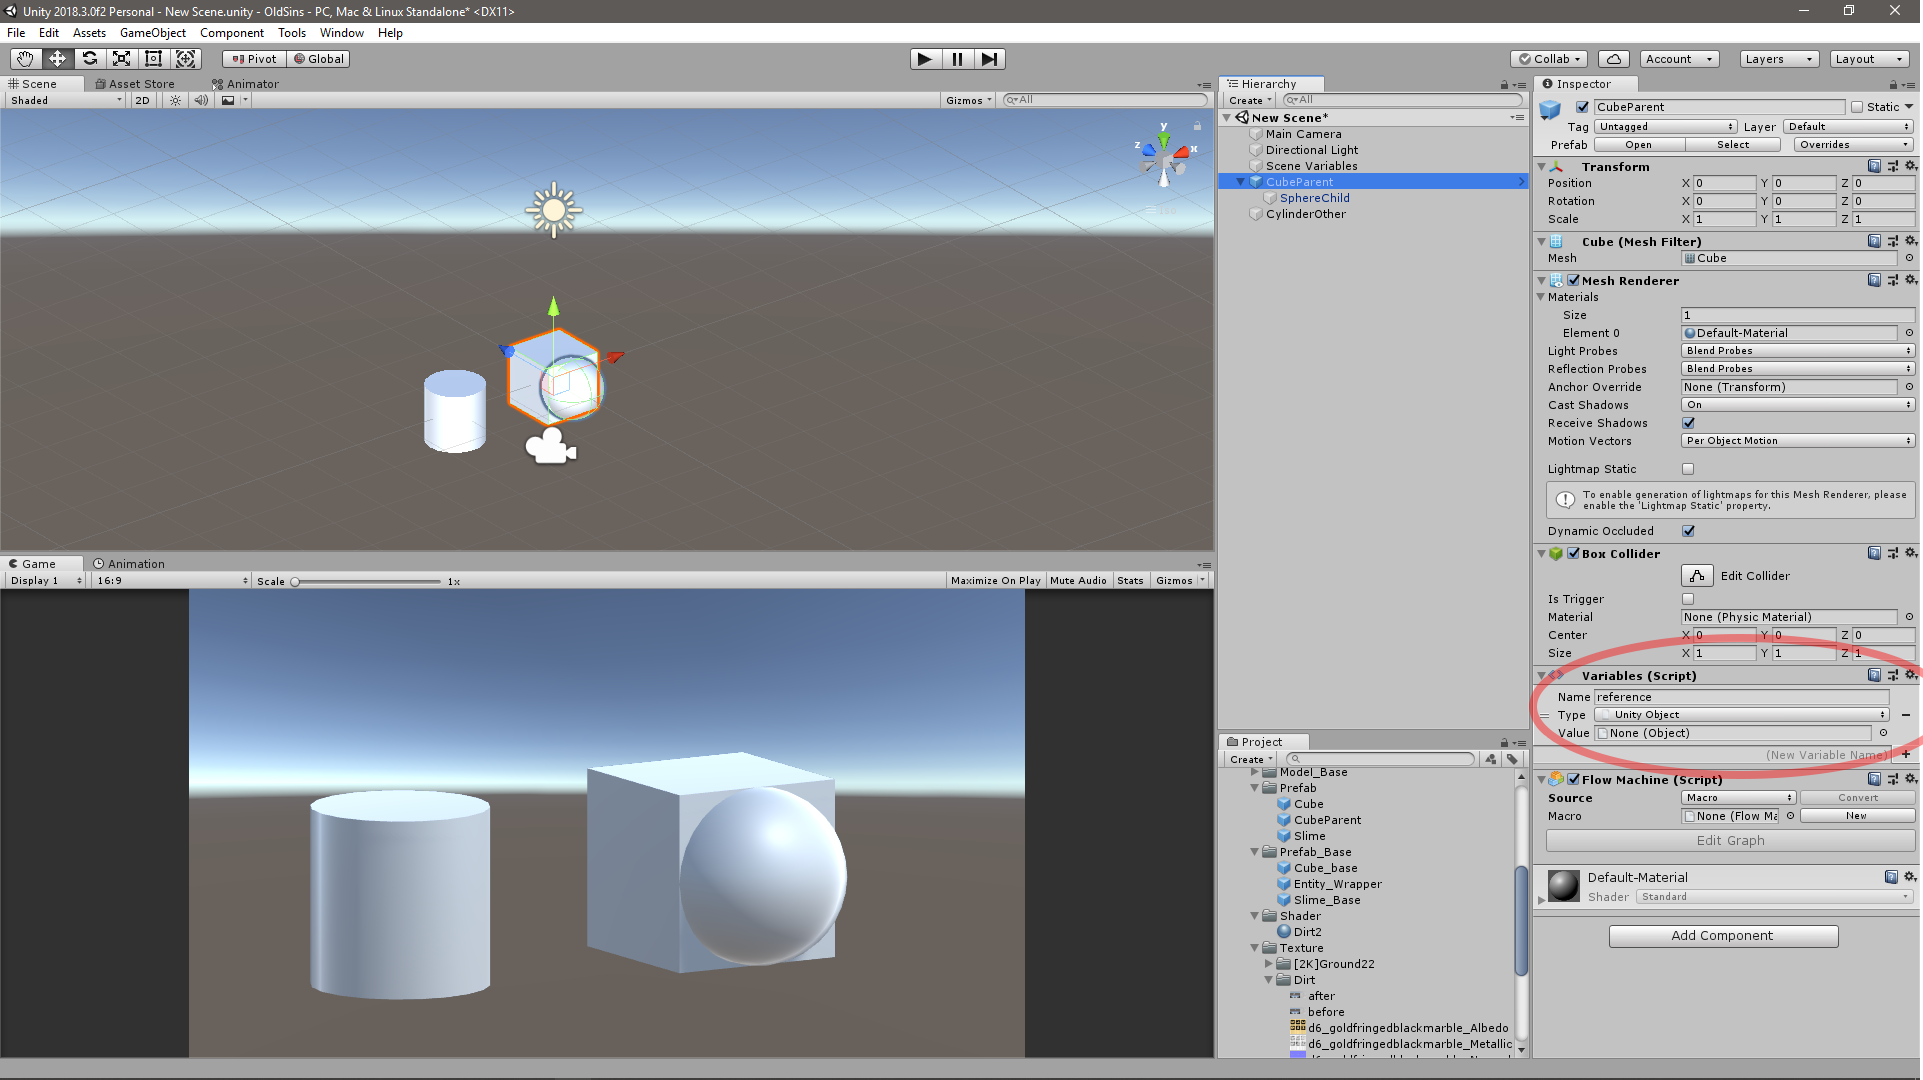 Unity Object picker in prefab isolation mode allows scene